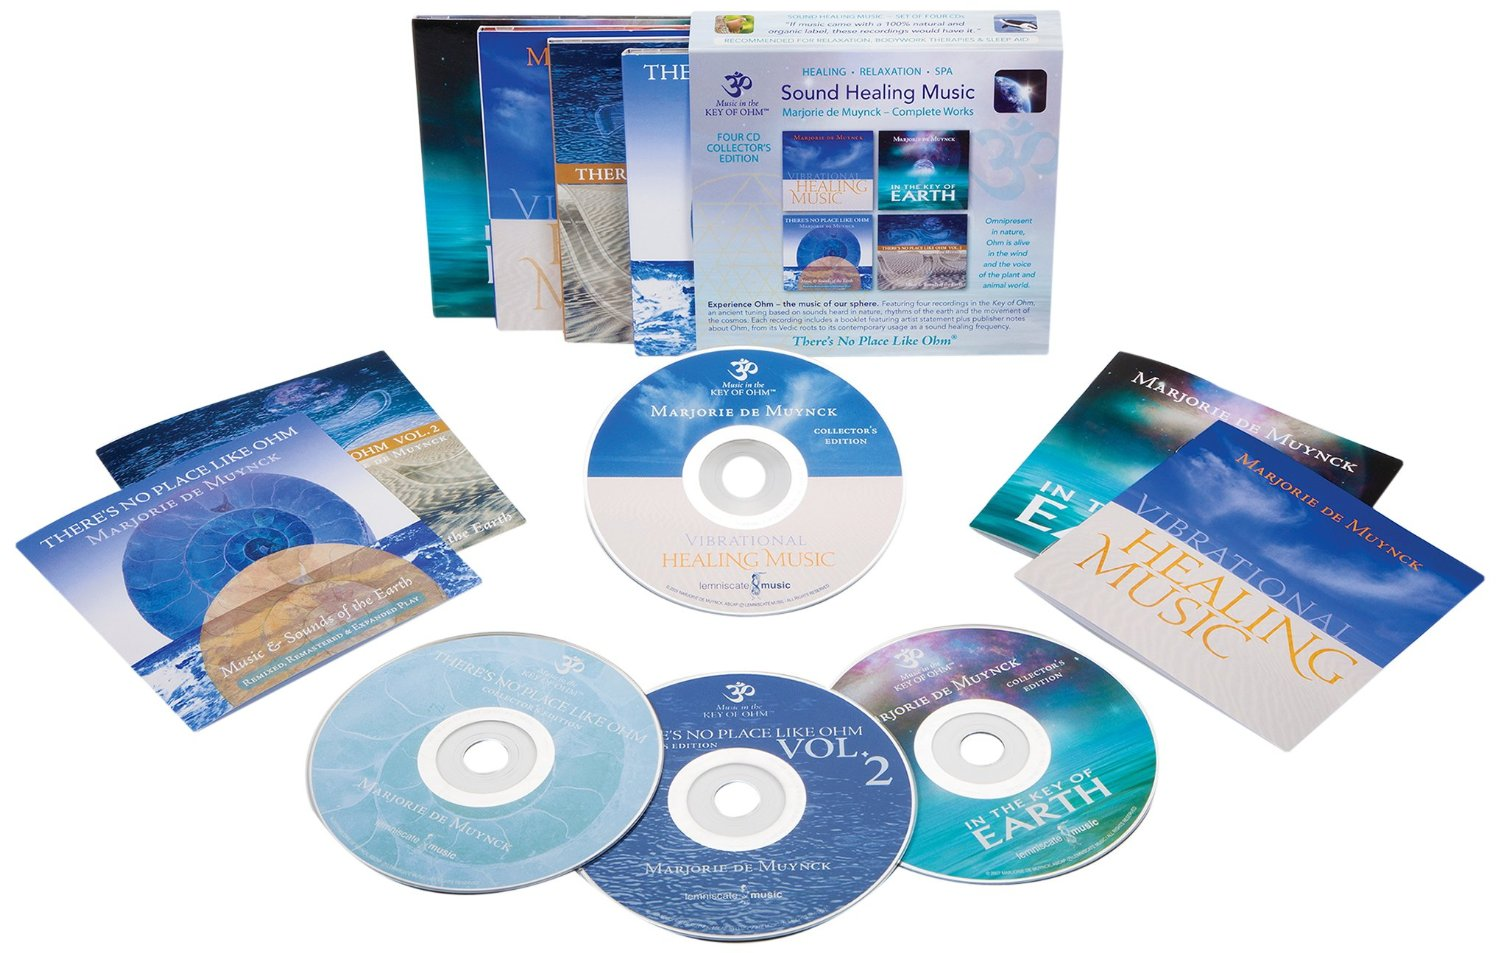 Sound Healing Music Collector's Edition CD Box Set